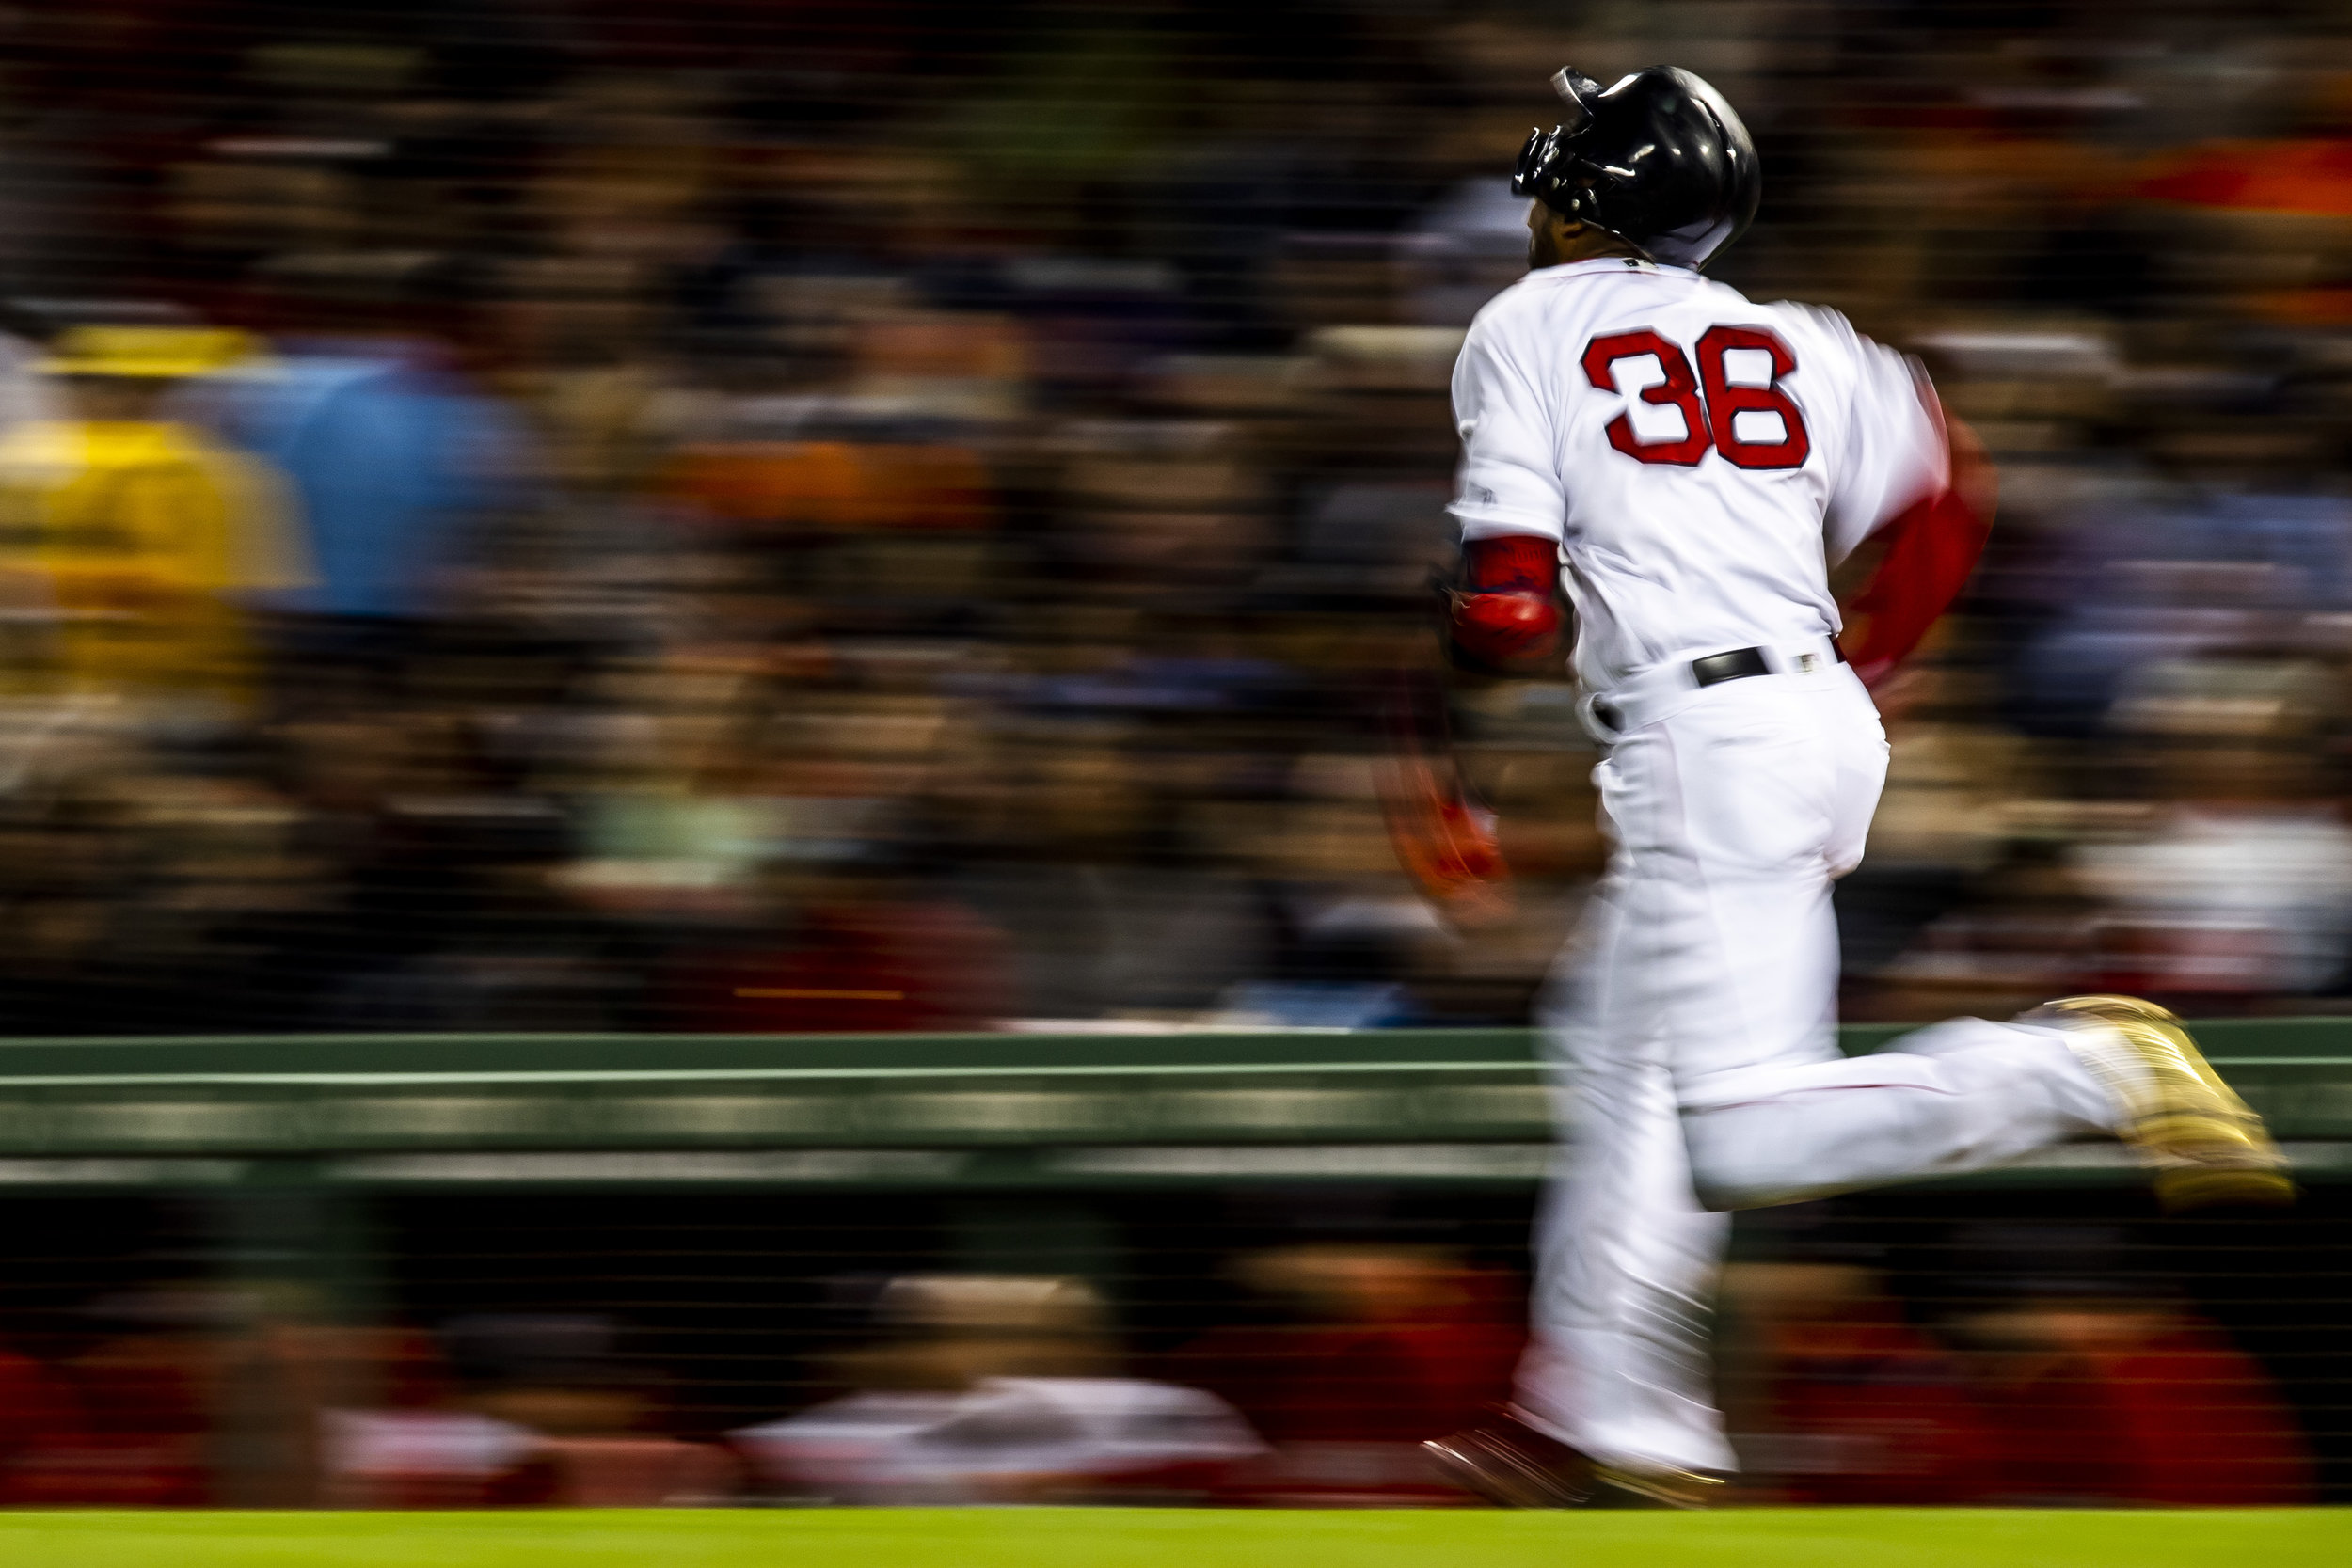 September 9, 2018 - Boston, MA: Boston Red Sox second basemen Eduardo Nunez runs down the first baseline as the Boston Red Sox face the Houston Astros at Fenway Park in Boston, Massachusetts on Sunday, September 9, 2018. (Photo by Matthew Thomas/Boston Red Sox)